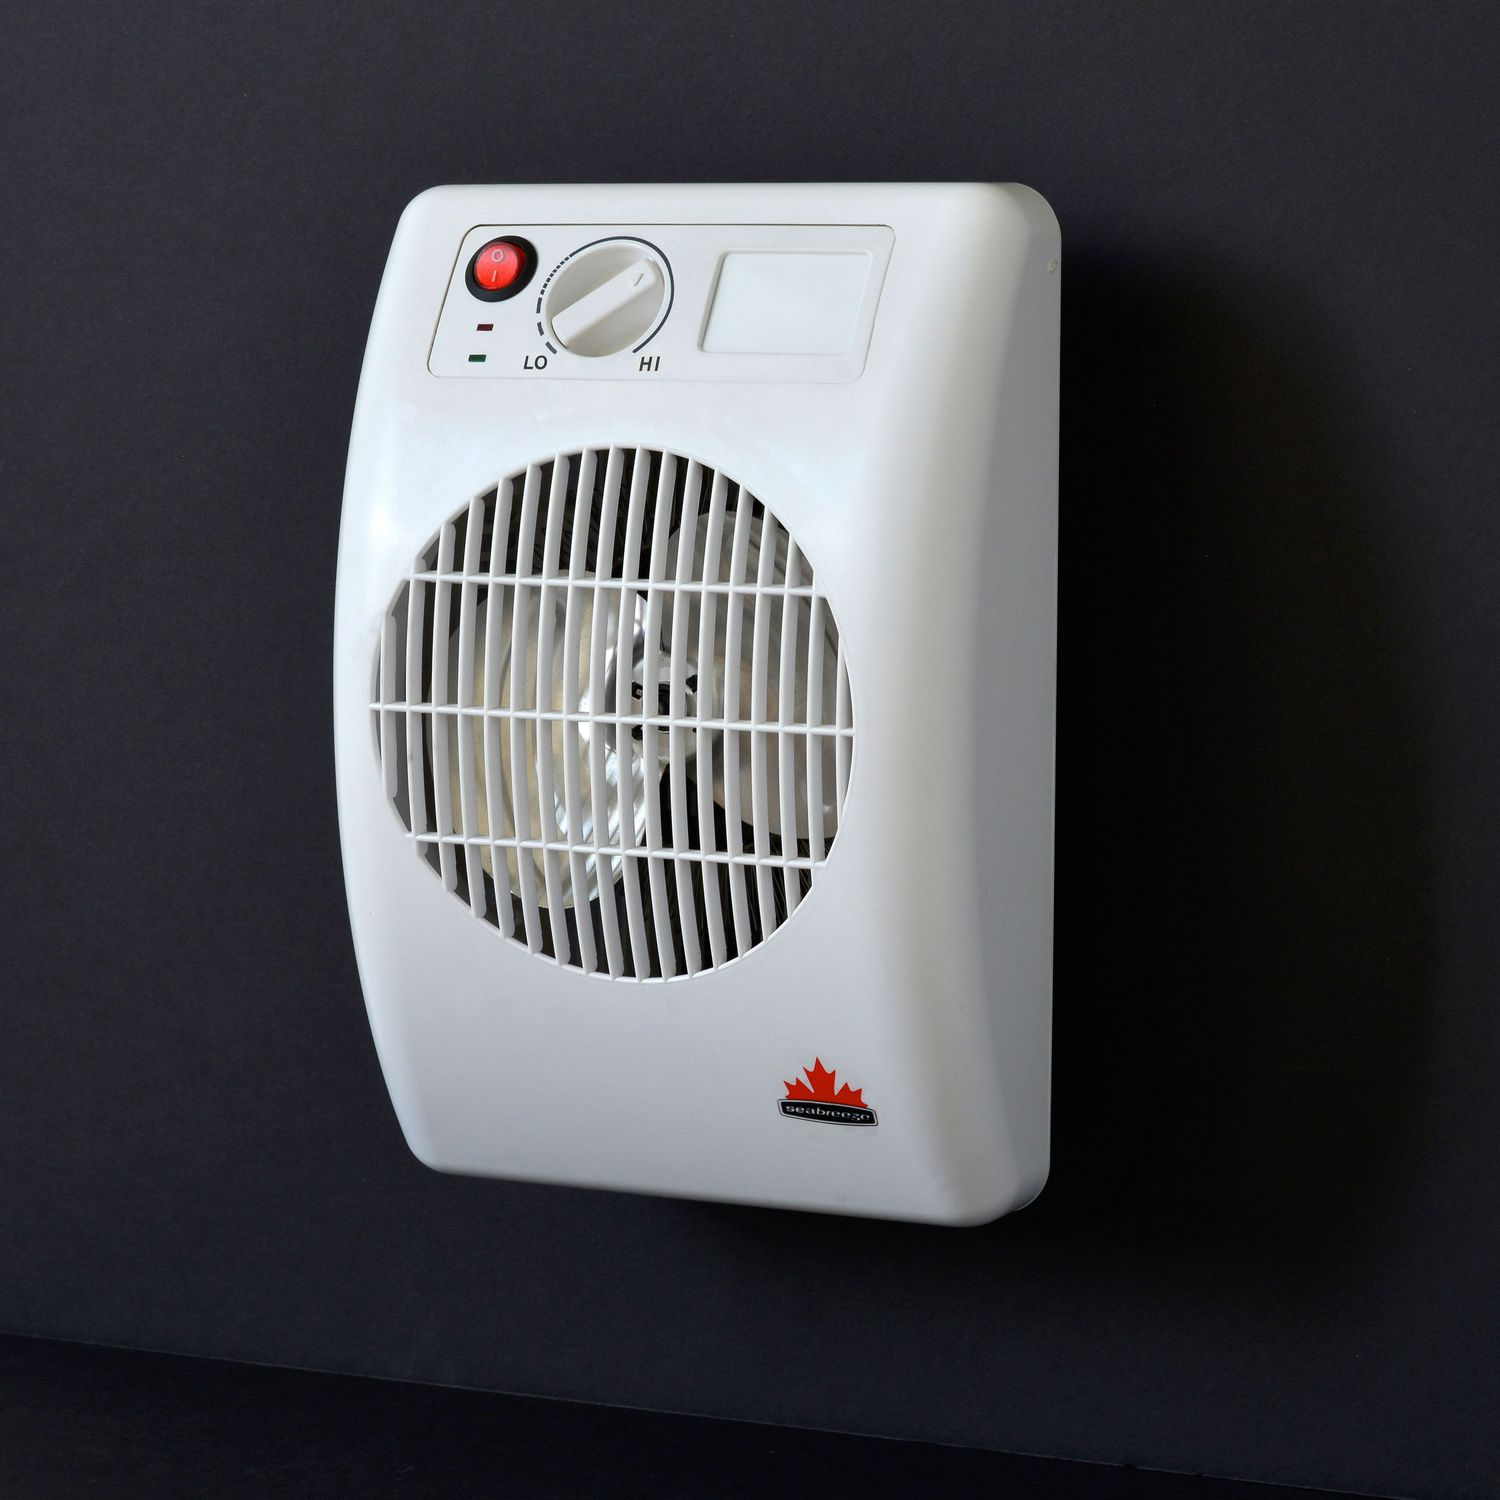 Bathroom Electric Heaters Best Space Heater For Bedroom Comfort Temp Oilfilled Radiant